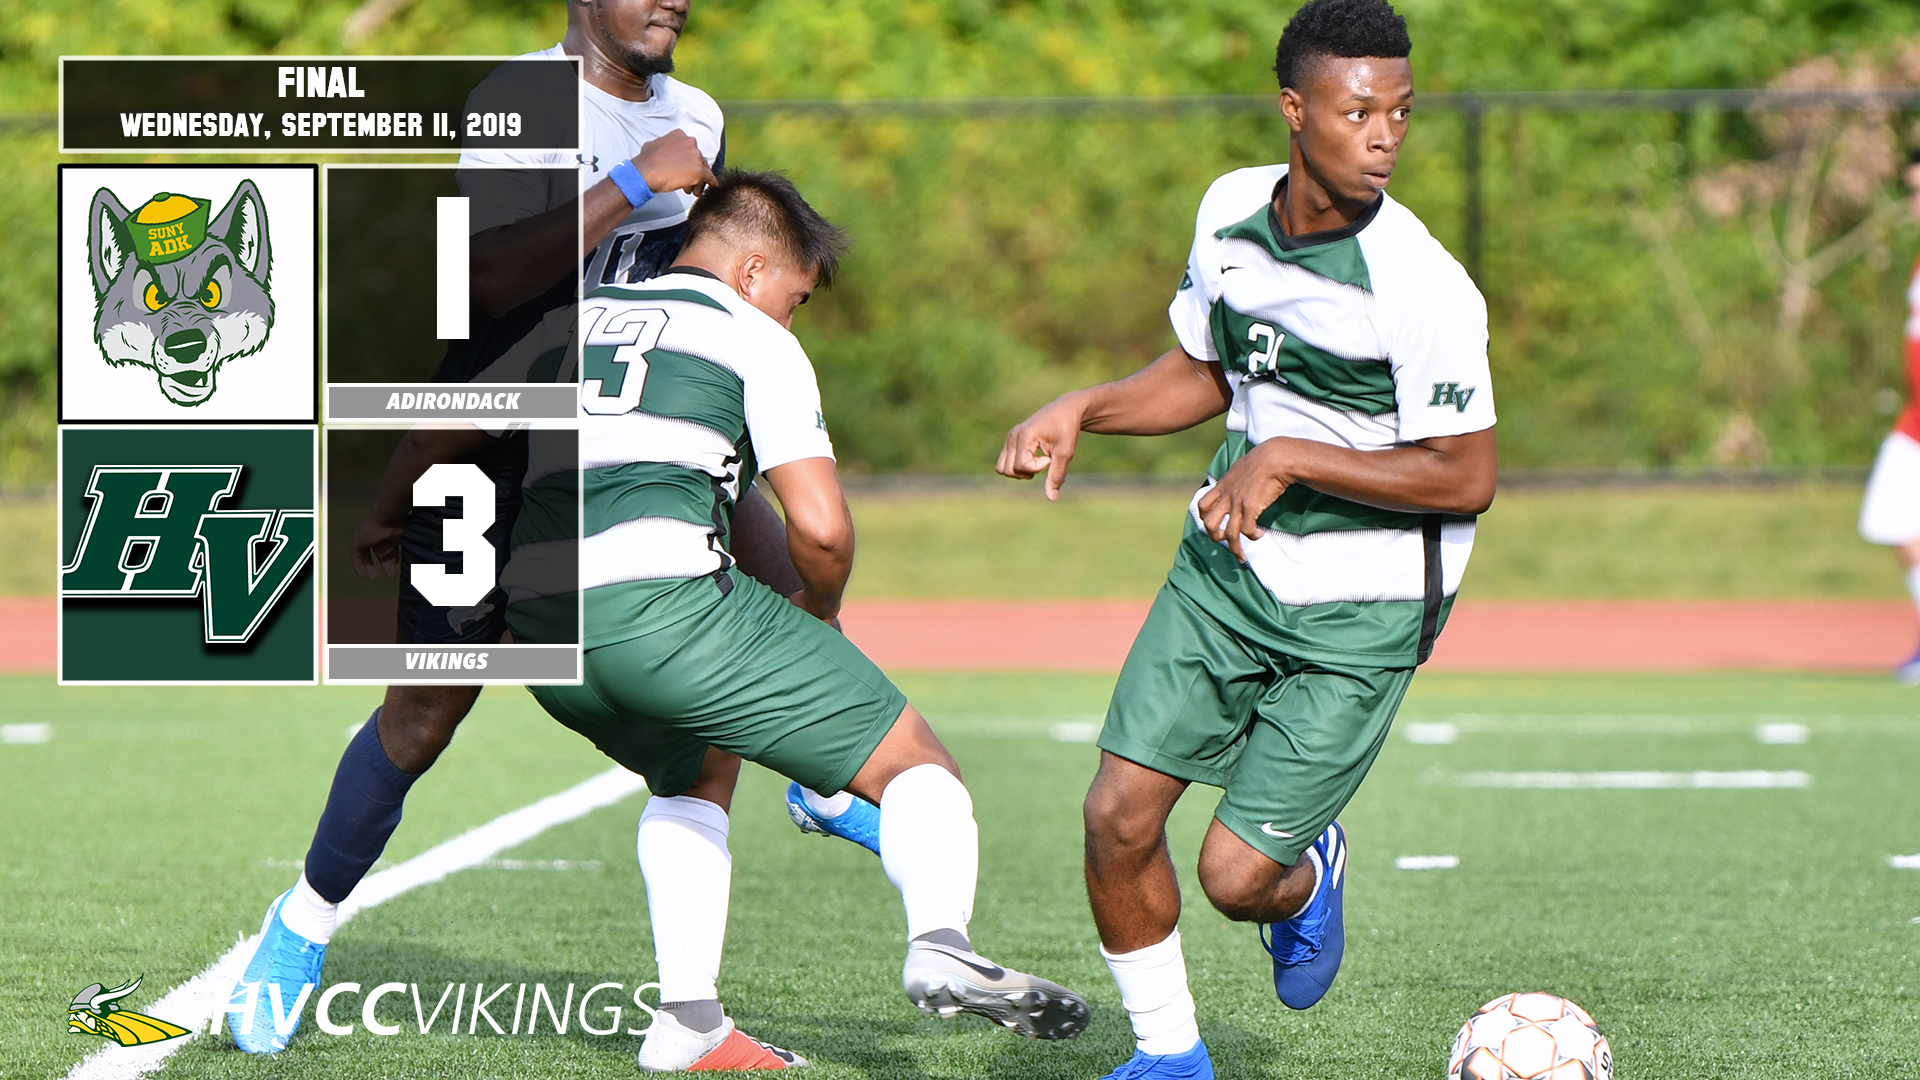 Men's soccer defeated Adirondack 3-1 on 9/11/2019